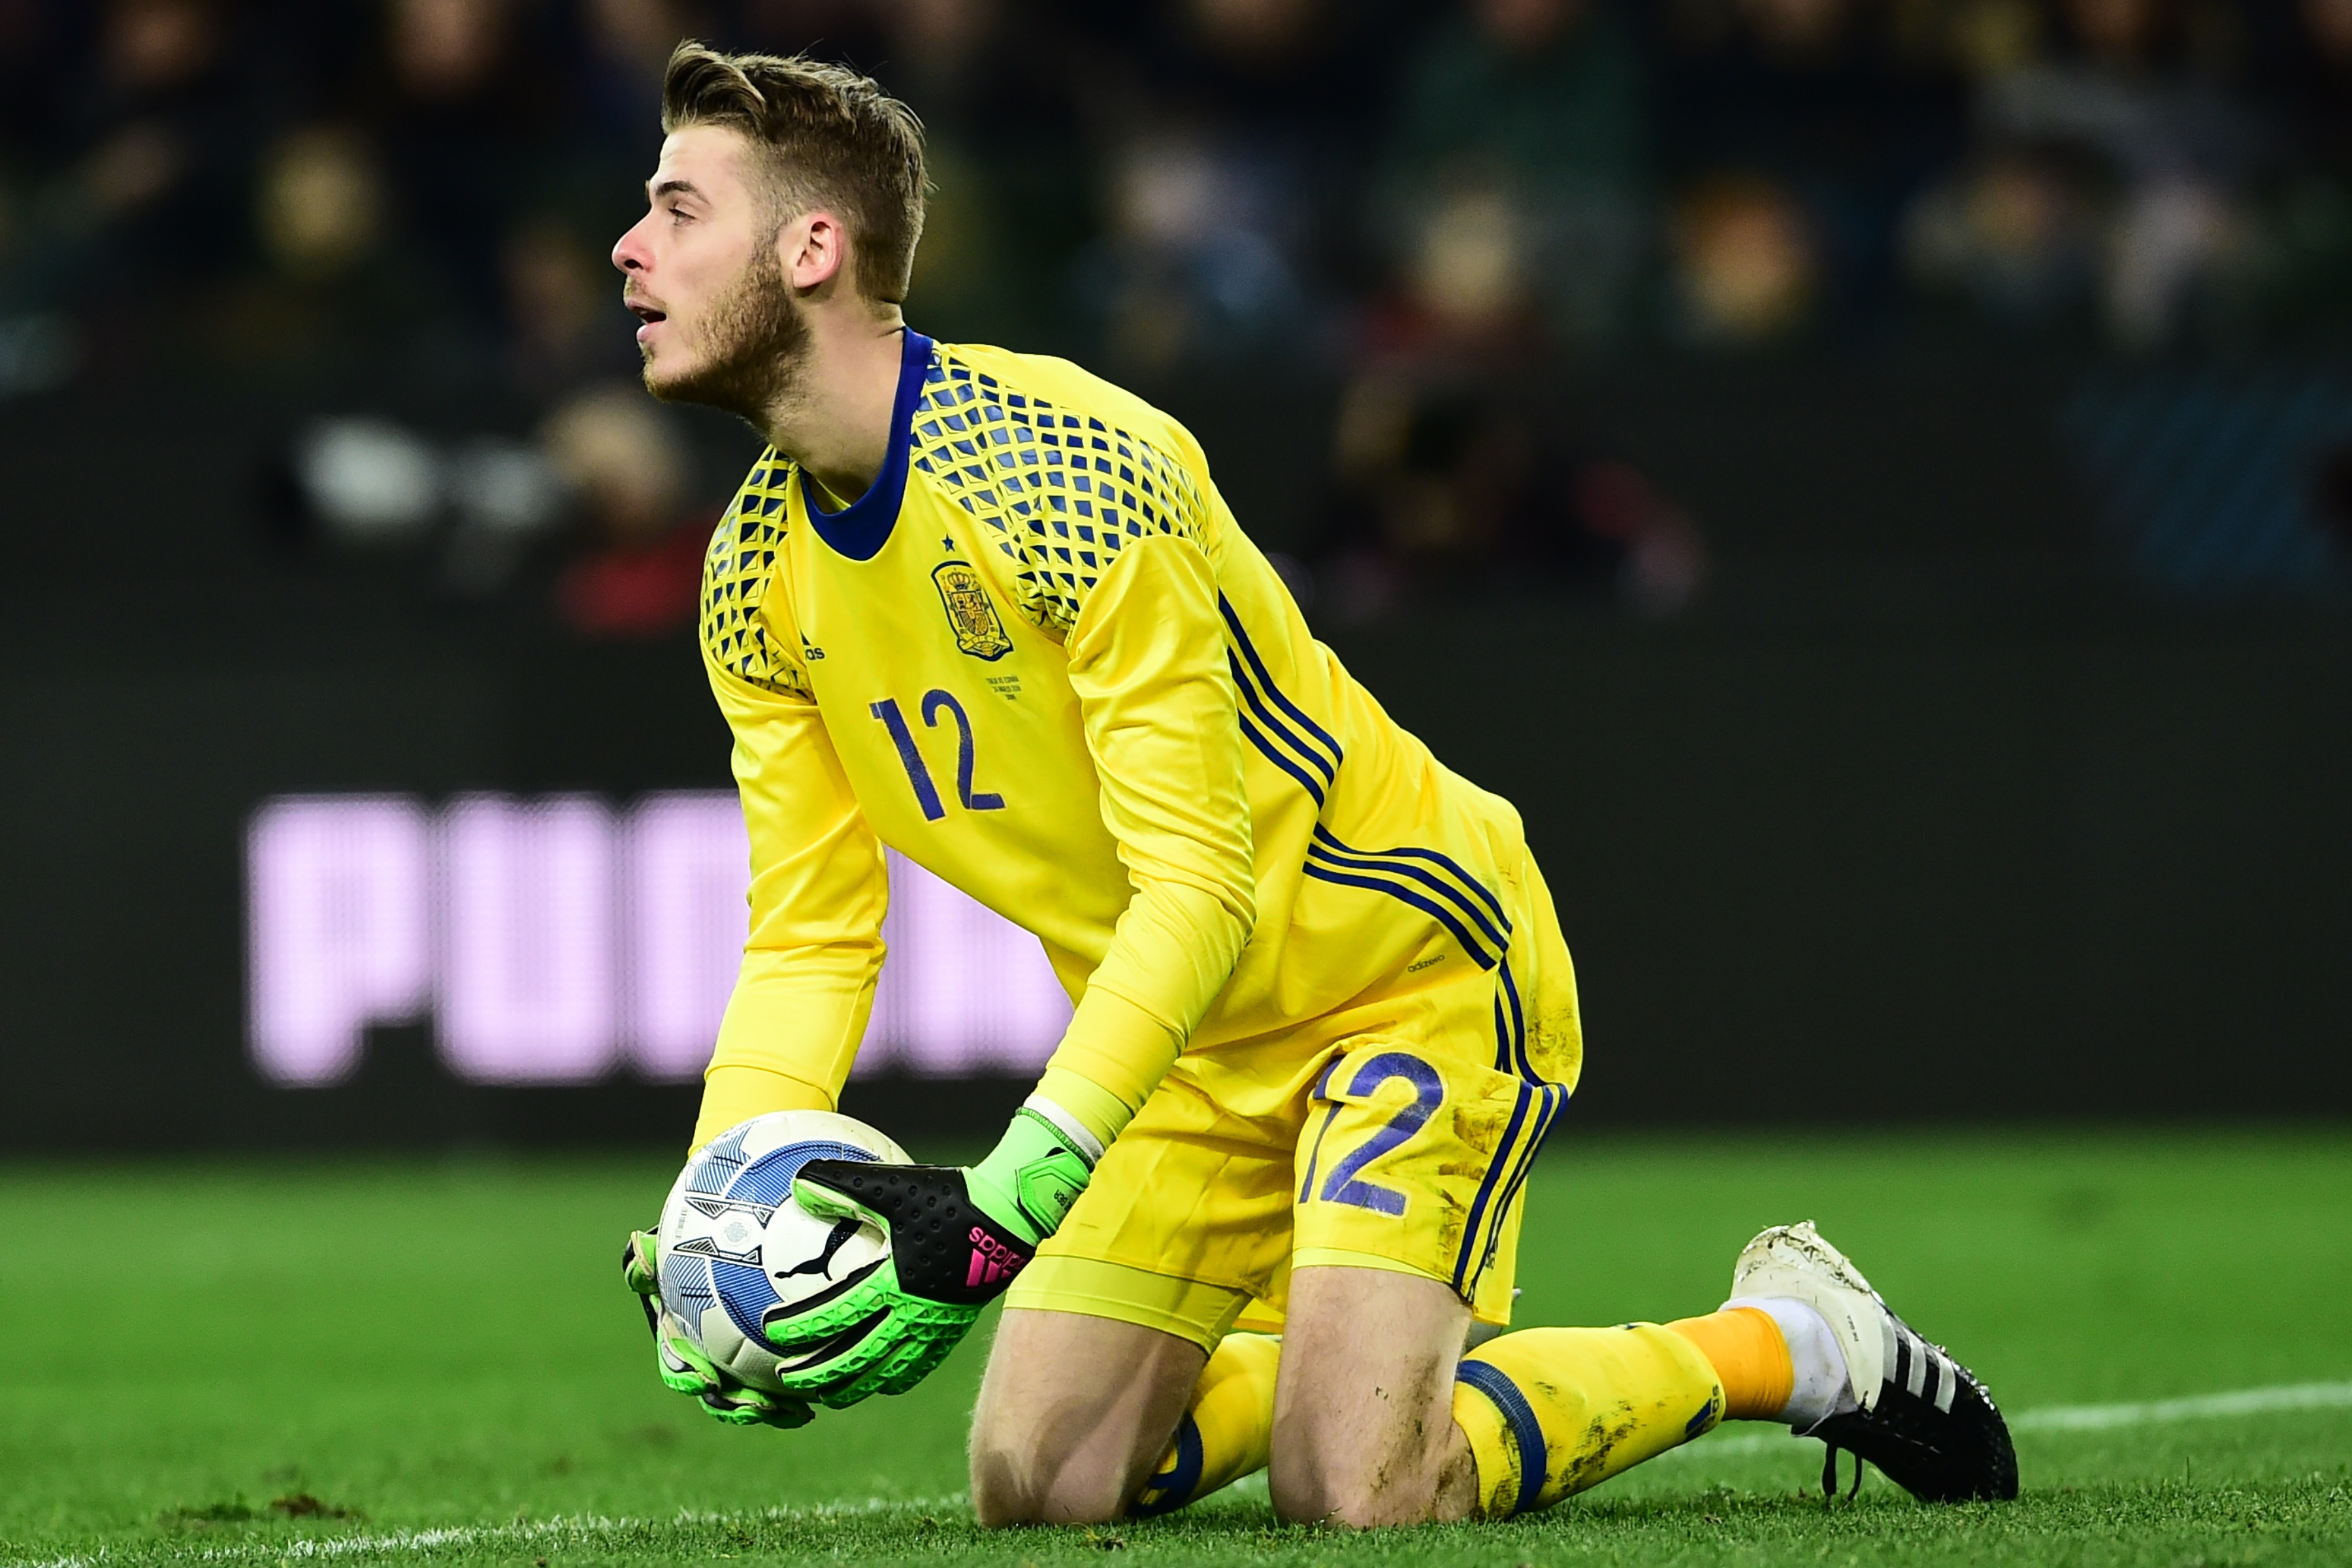 Will Manchester United stop Real Madrid from signing David de Gea in this summer's transfer window?